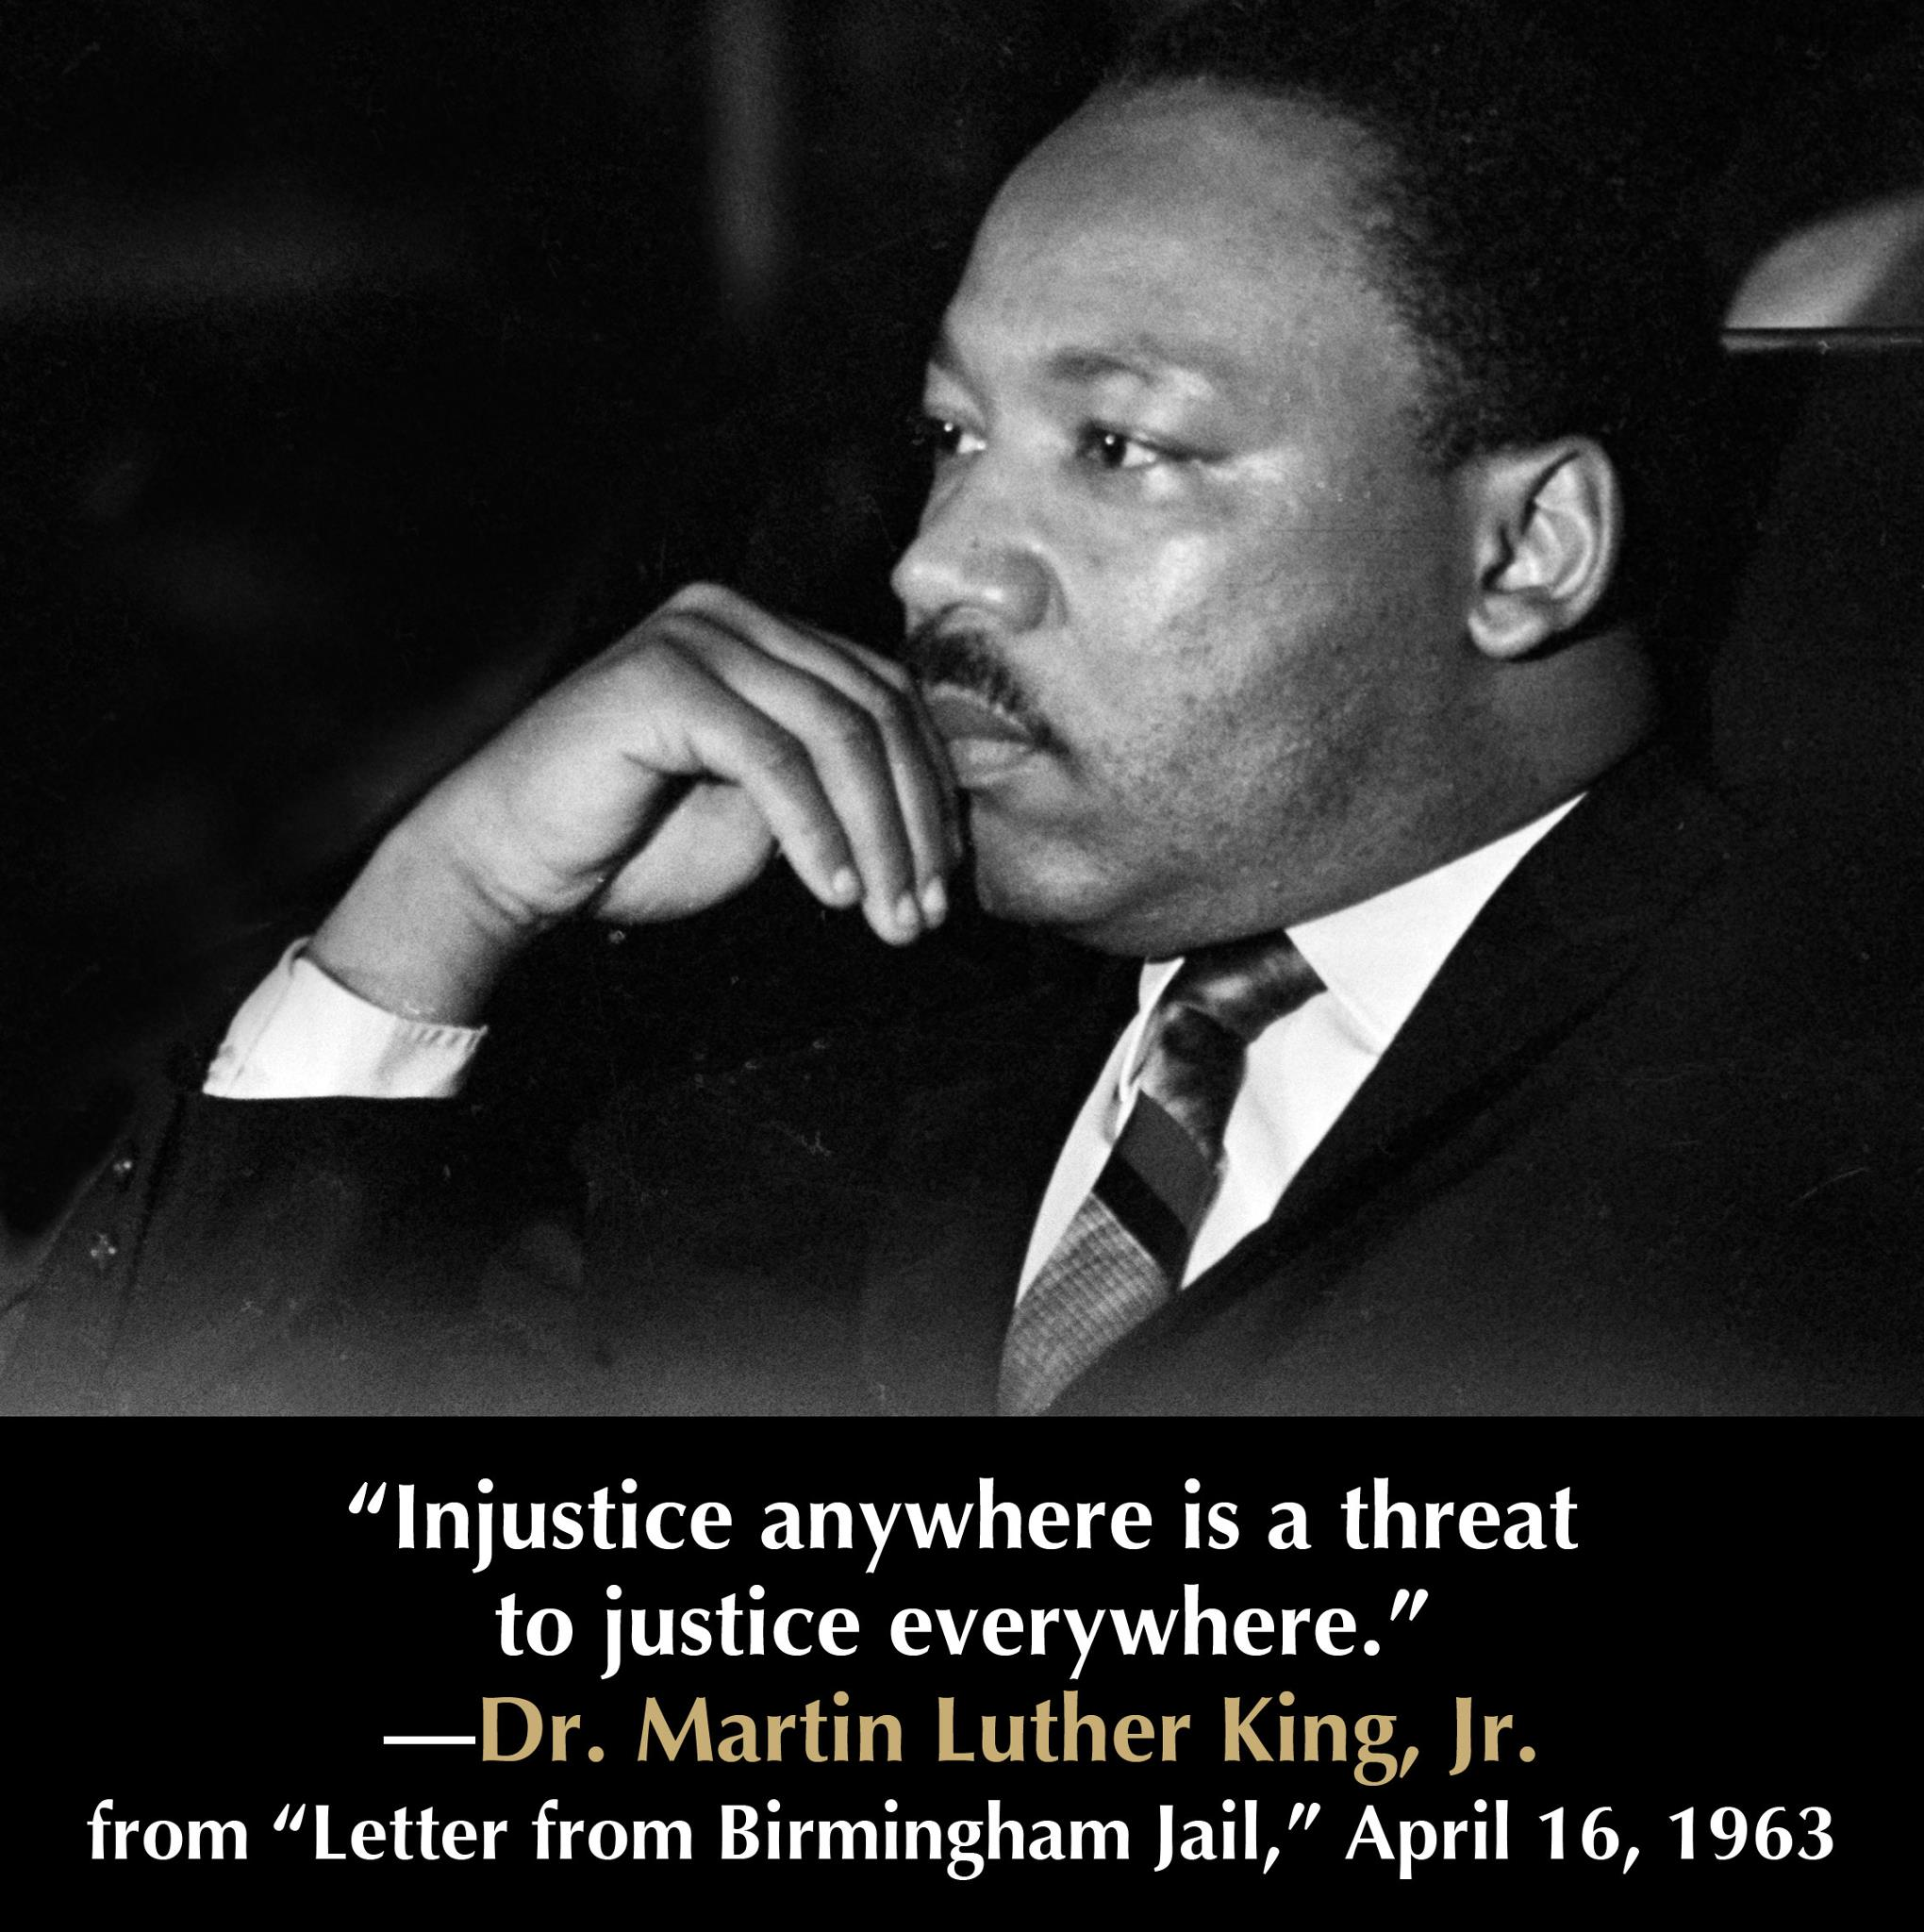 Martin Luther King Jr. on Injustice